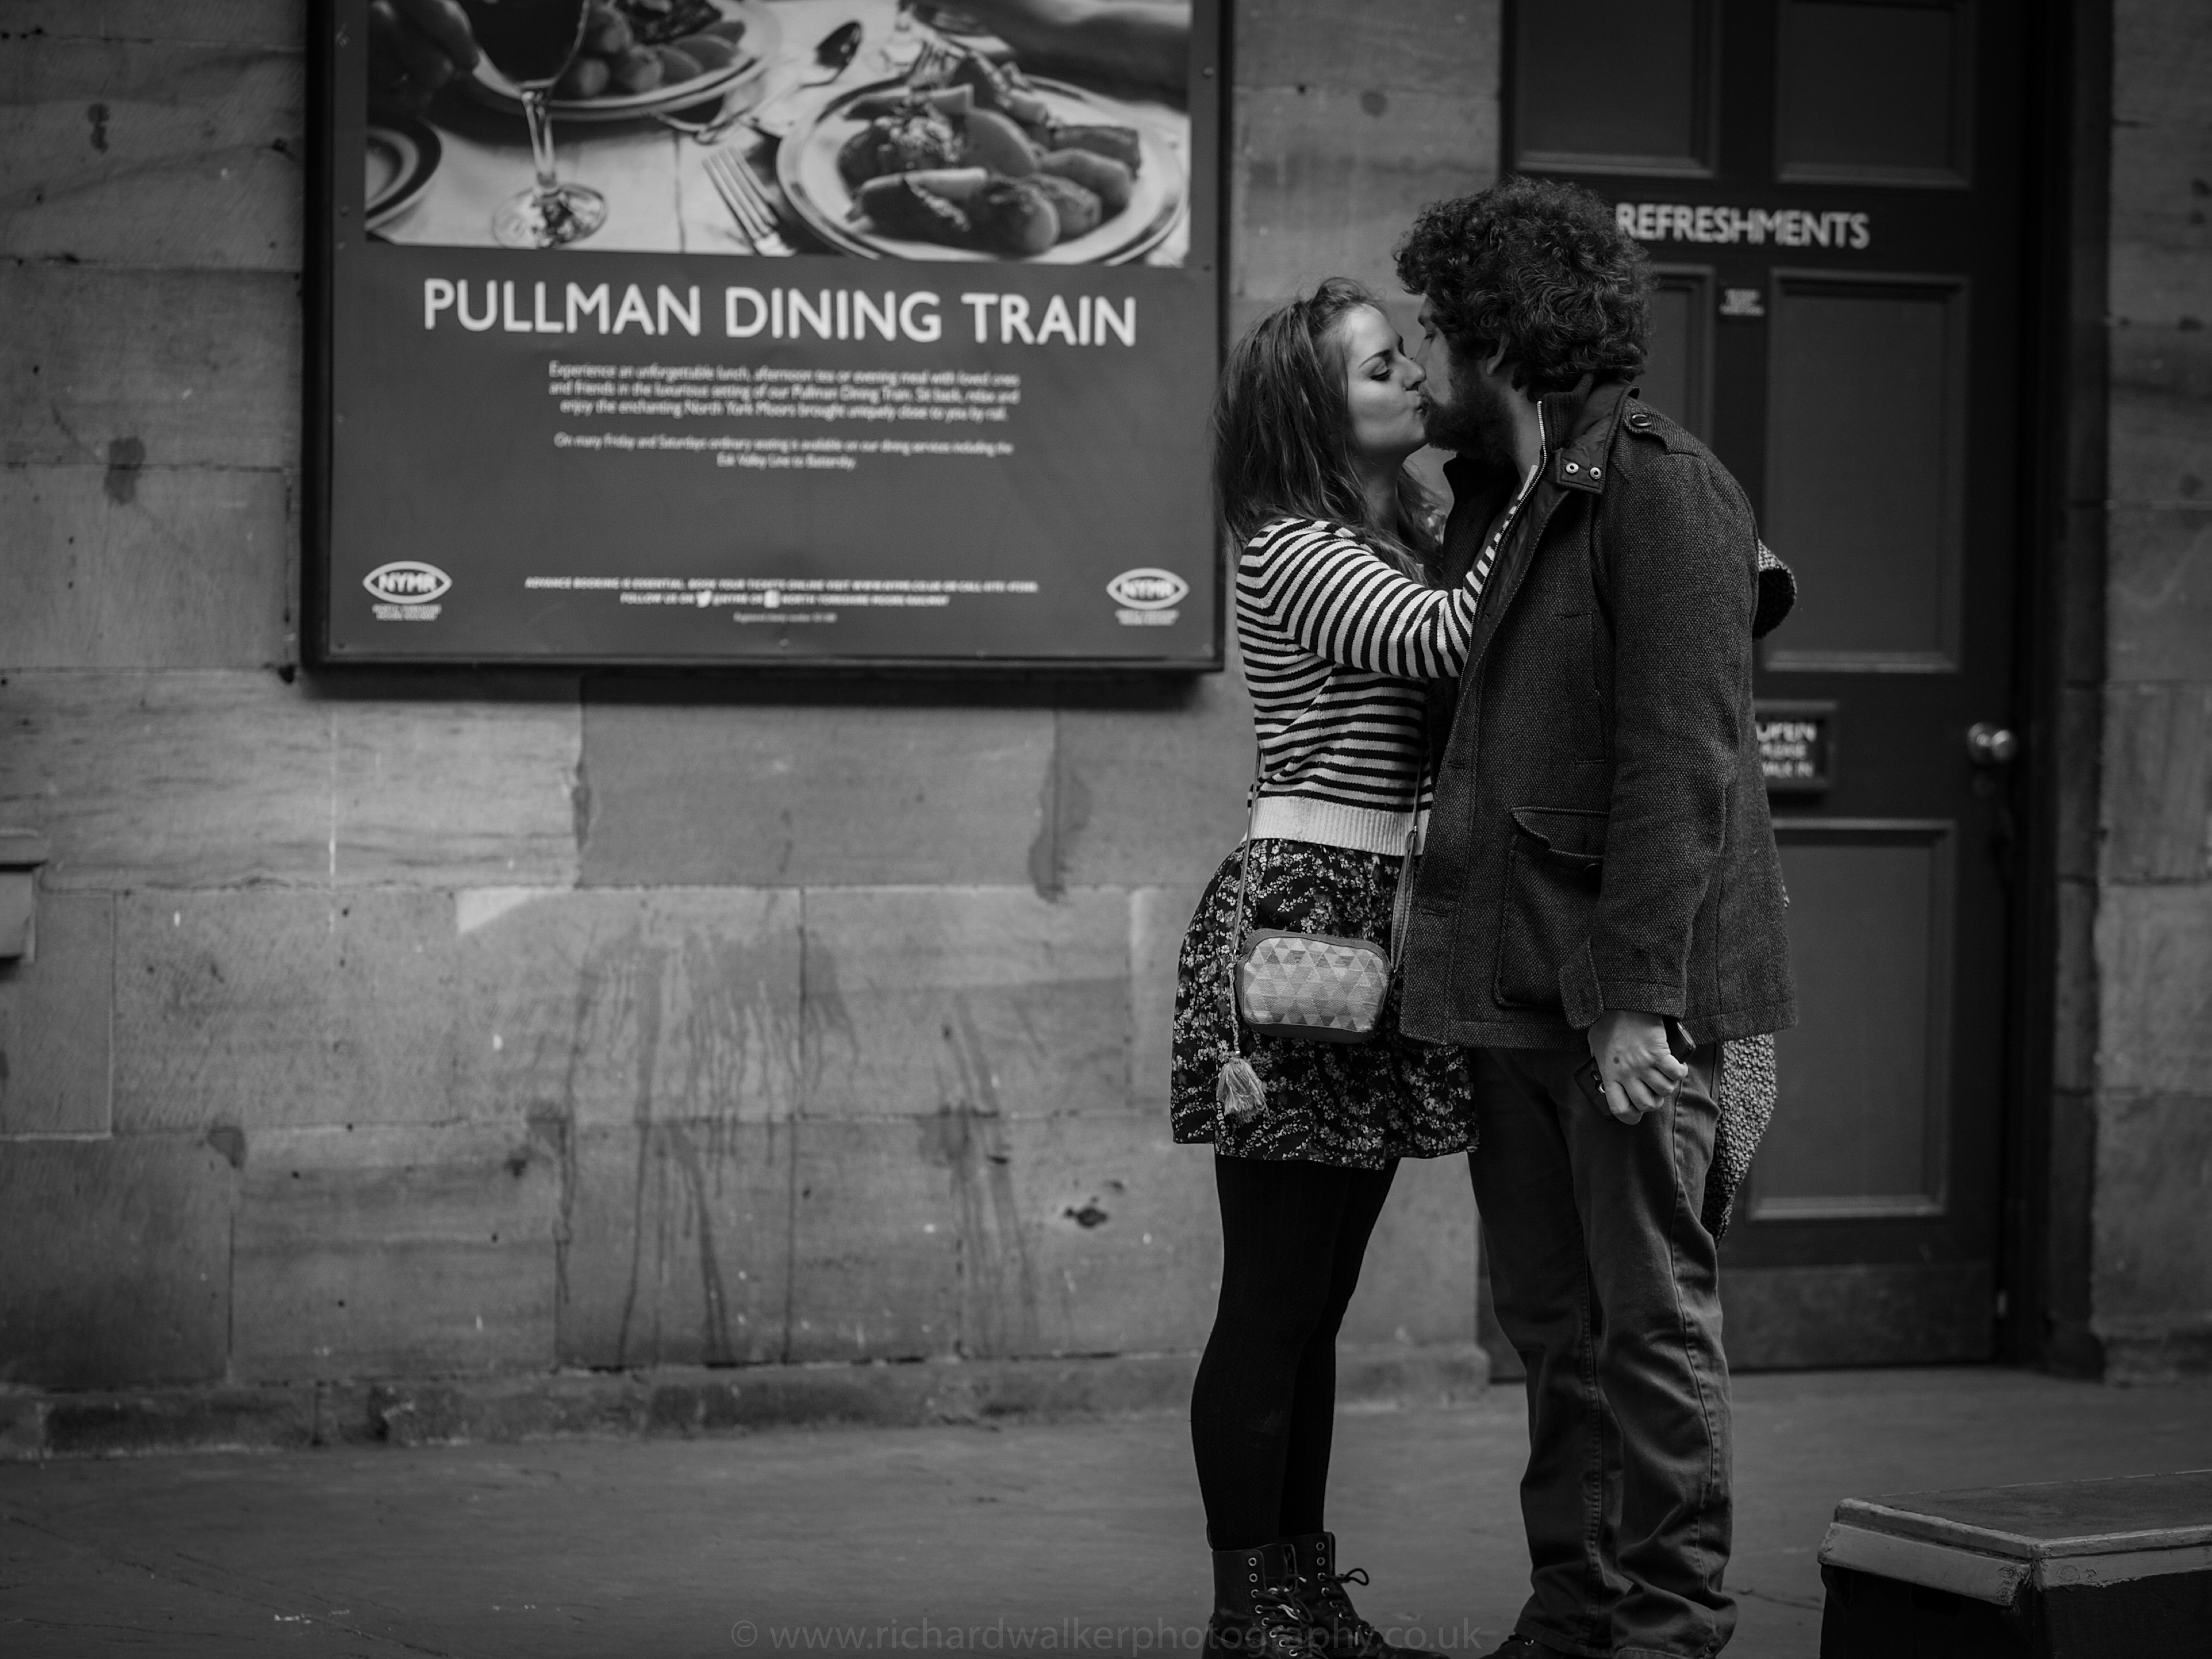 The Romance of Steam - A young couple kiss on the platform at Pickering Station